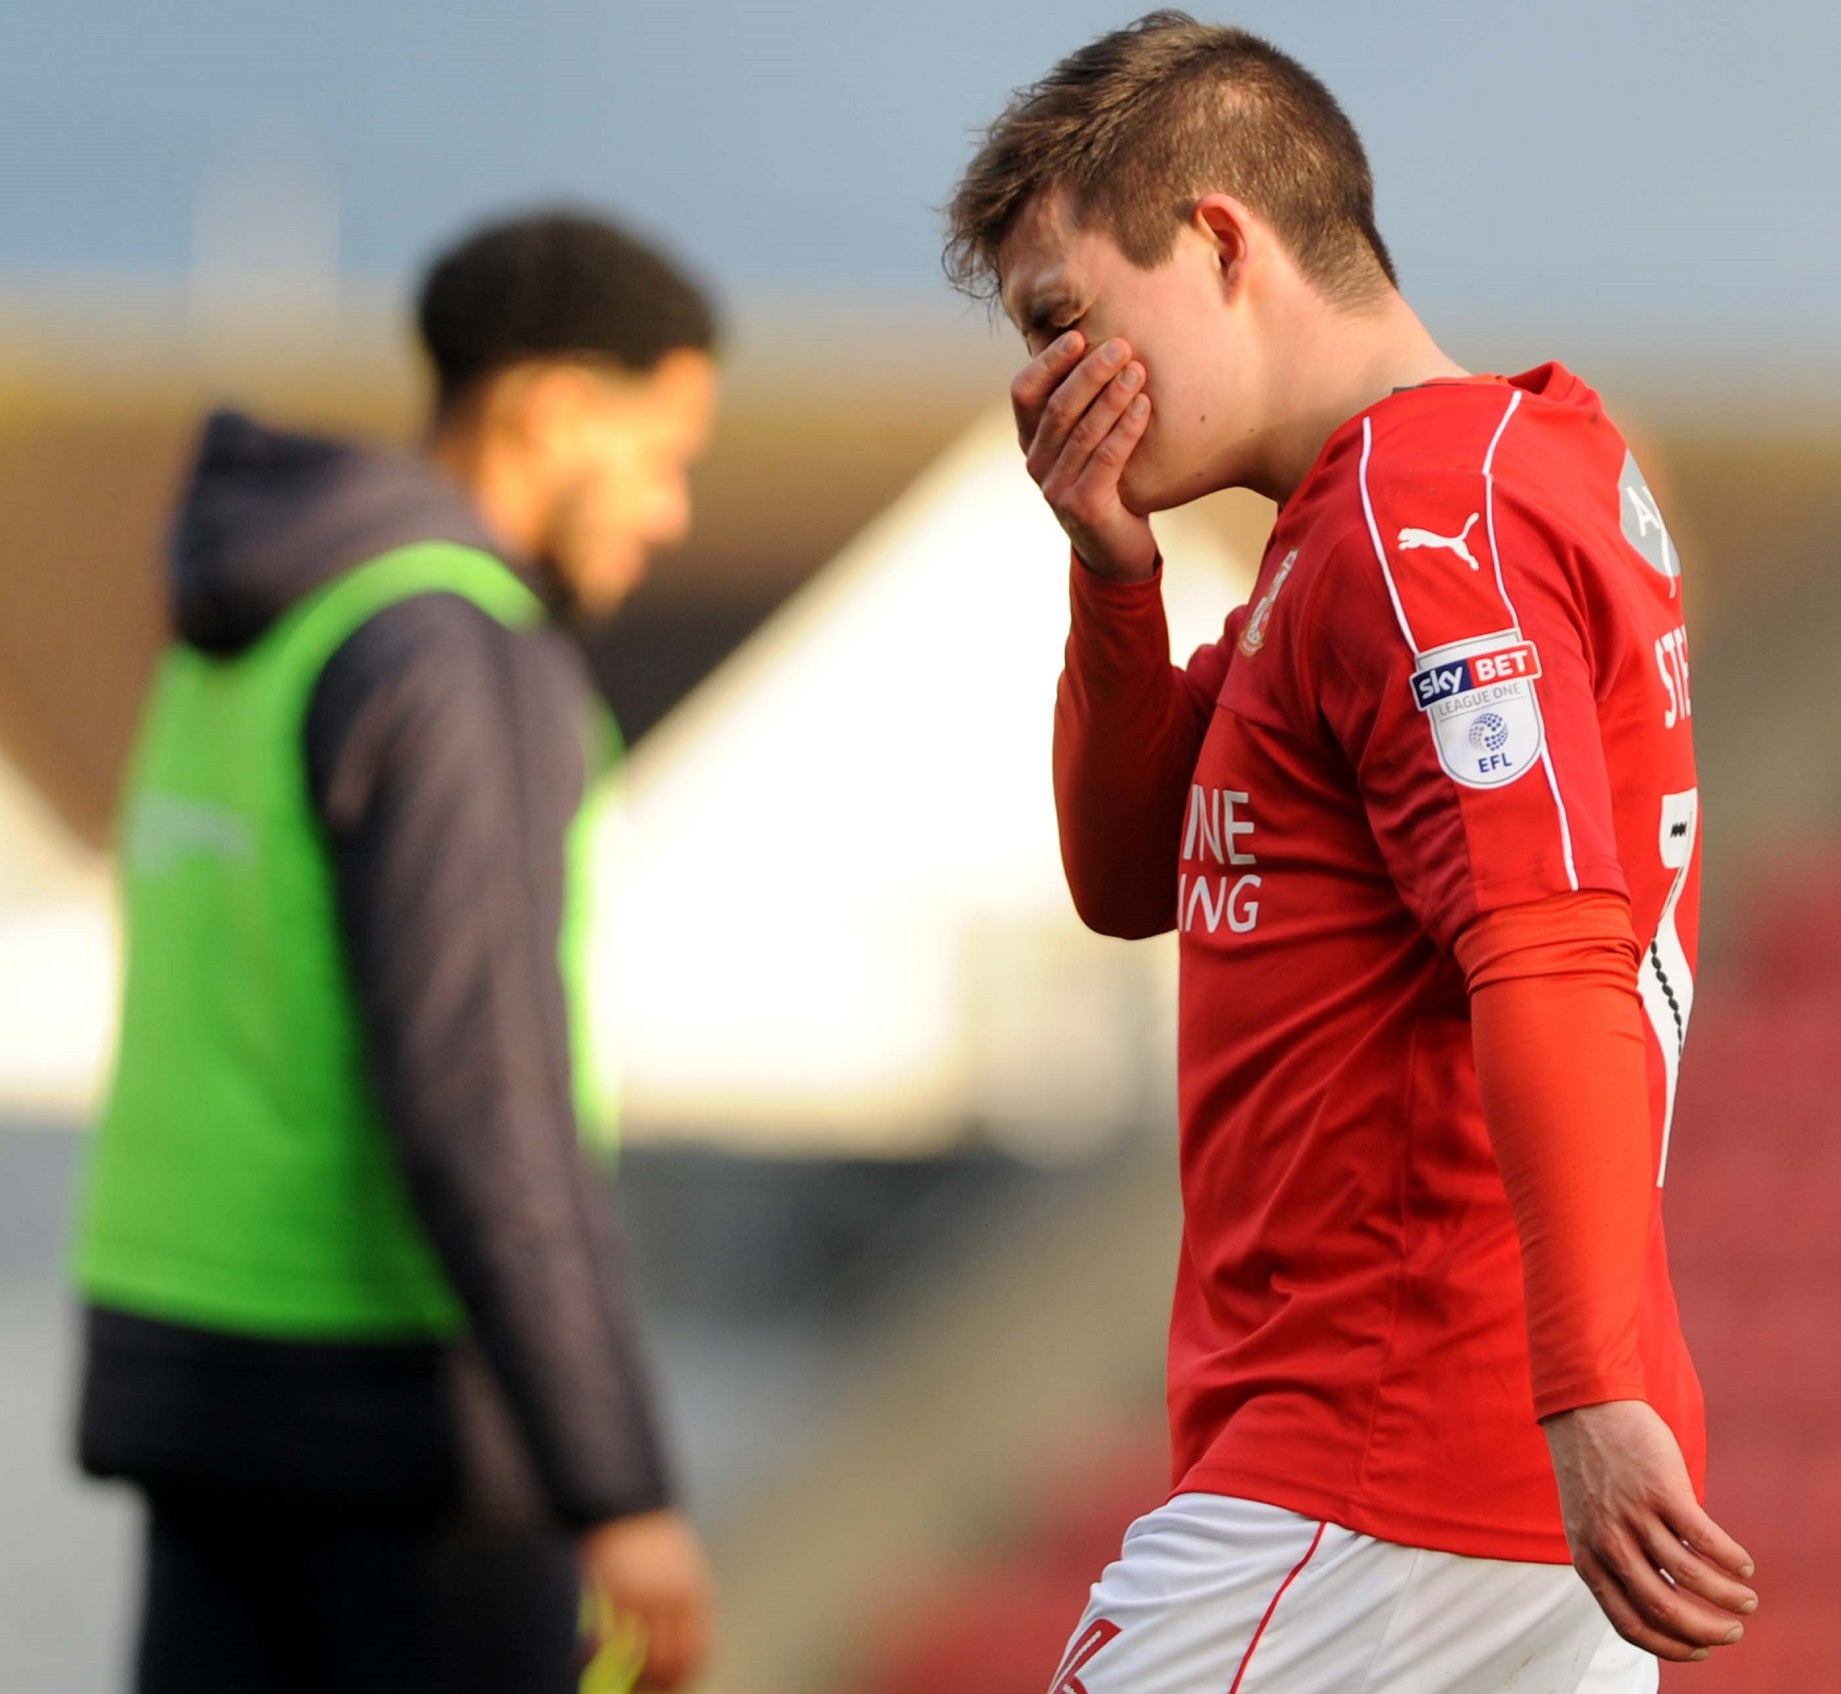 Jordan Stewart has been fined by Swindon Town alongside Lawrence Vigouroux, Brandon Ormonde-Ottewill and James Brophy